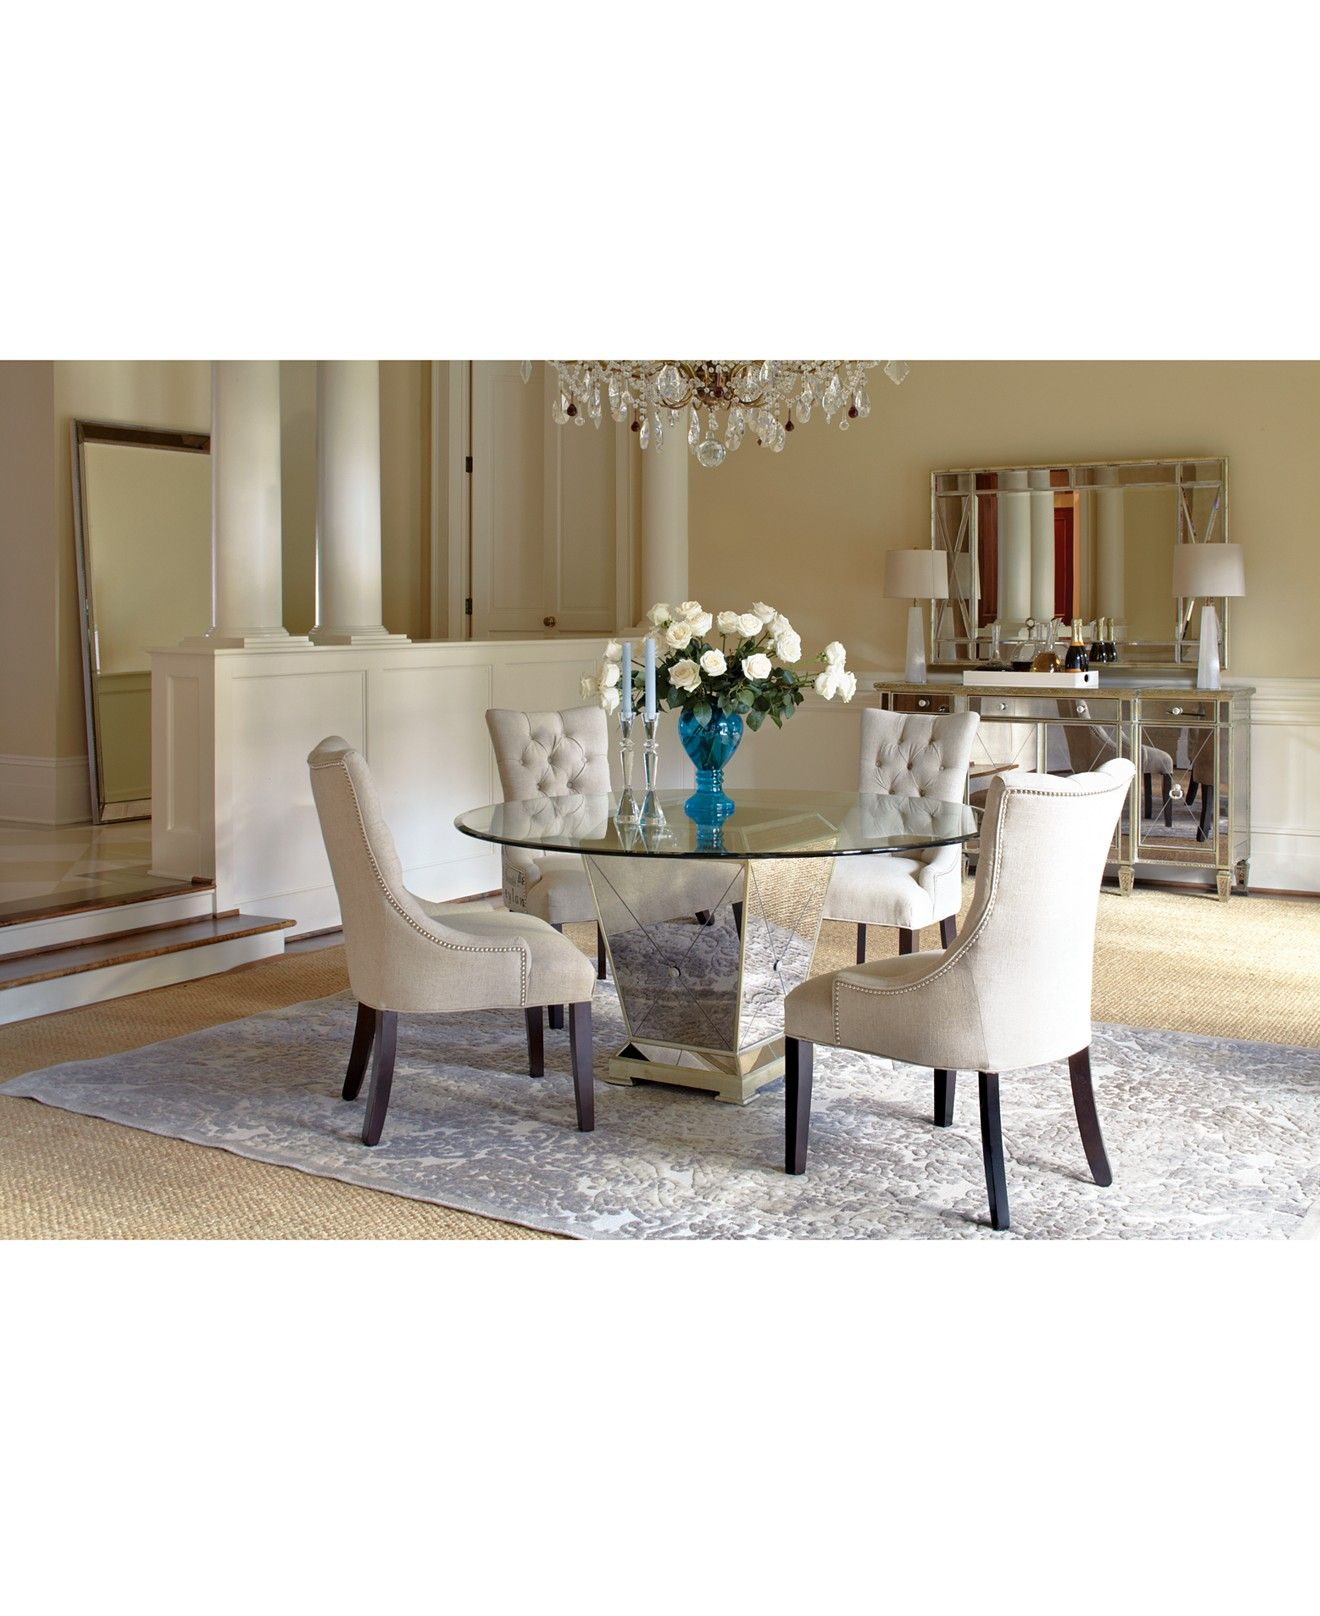 Marais Round Dining Room Furniture Collection Mirrored In